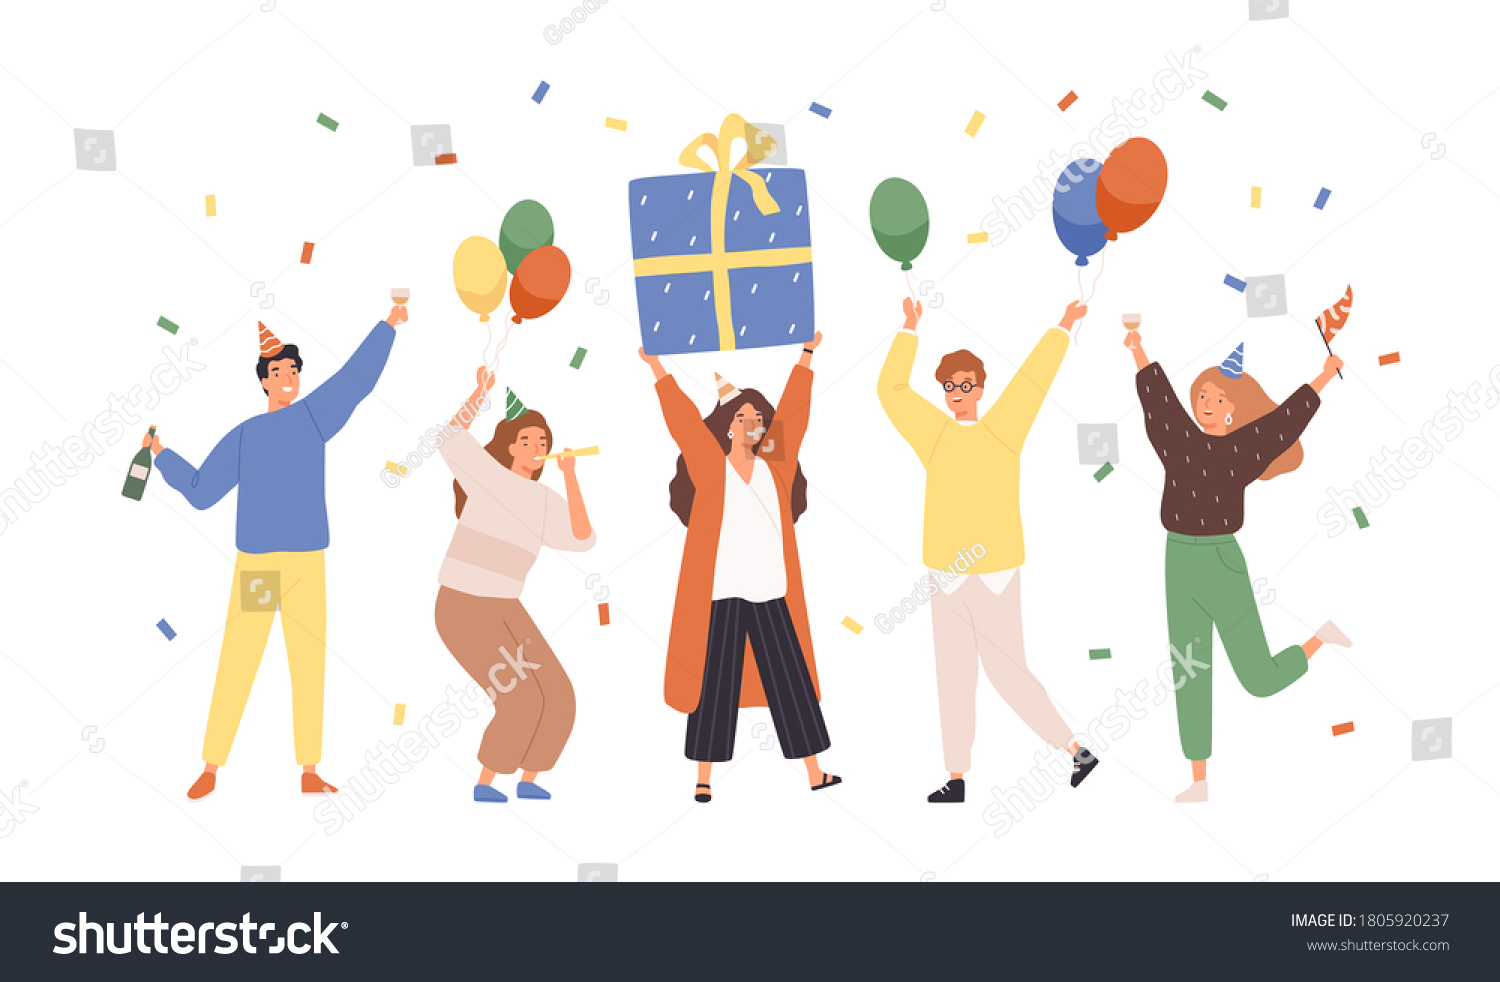 Group of happy people raising hands celebrating holiday with colorful confetti vector flat illustration. Woman hold gift box having fun with friends isolated. Person with balloons and champagne #1805920237